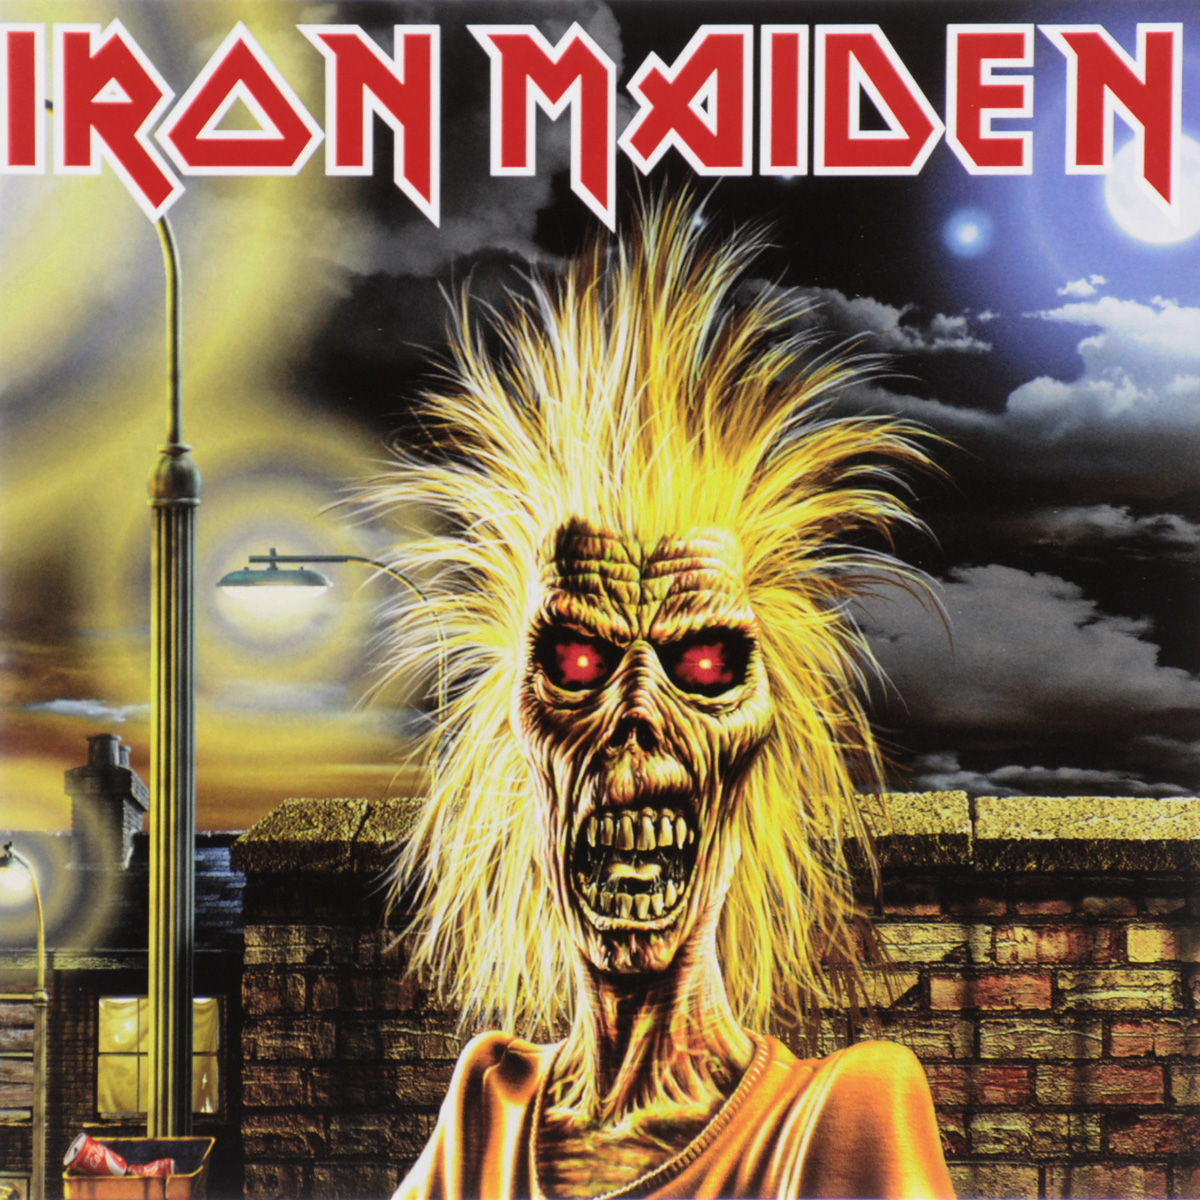 Special Multimedia Section:Special enhanced CD tor-use on your PC or macintosh featuring full length videos, band and tour history, biographies, exclusive photo galleries, internet web links and much more. 1. Iron Maiden 2. Phantom Of The OPERA